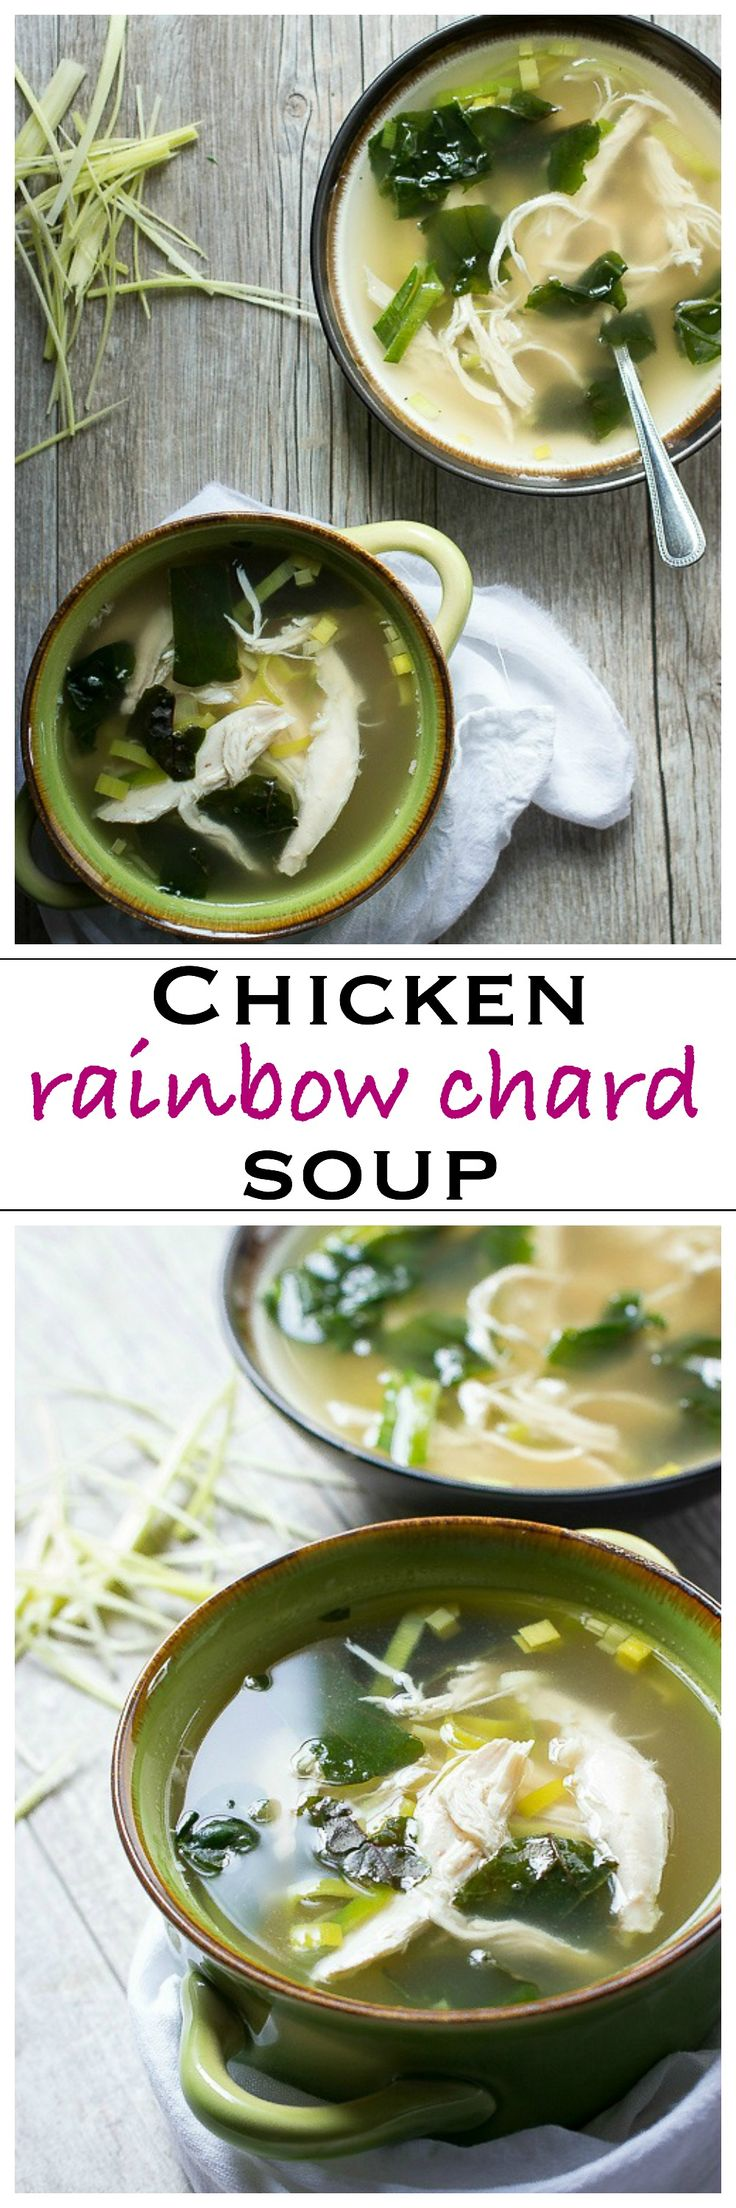 Easy Chicken Soup with Leeks and Rainbow Chard | Foodness Gracious